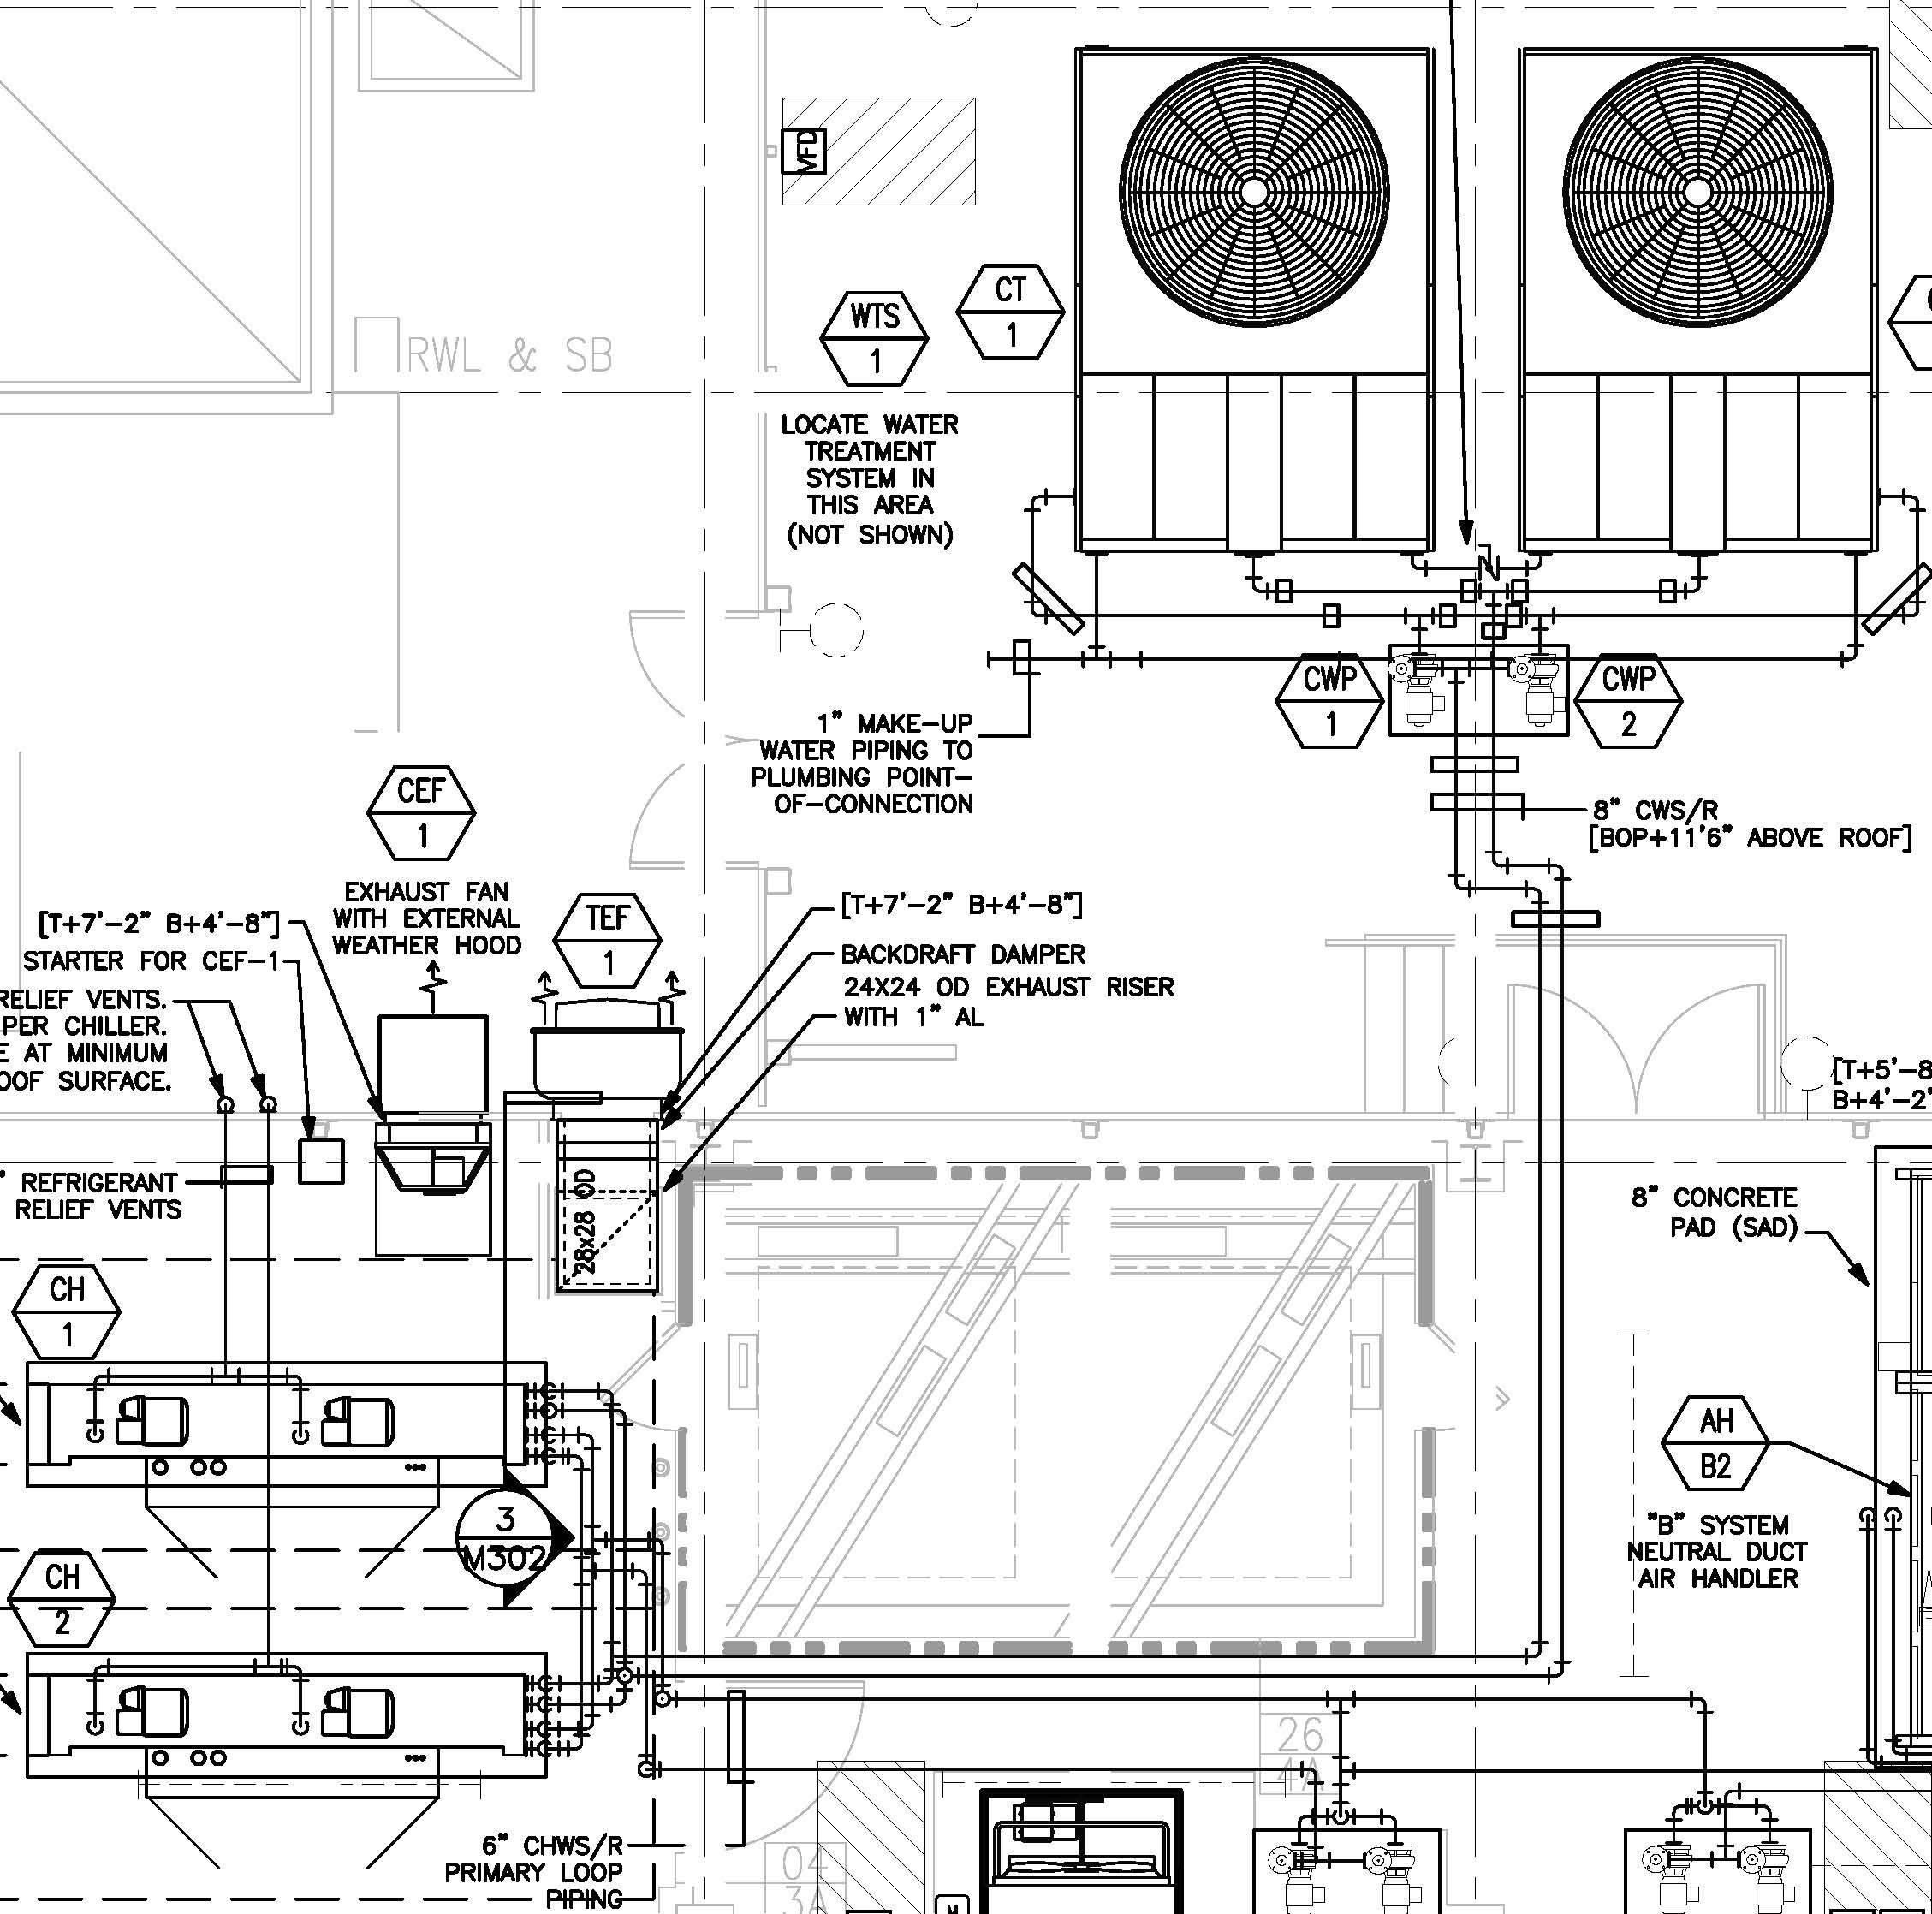 outside ac unit wiring diagram Download-Hvac Condenser Wiring Diagram New Air Conditioning Condensing Unit Wiring Diagram Valid Wiring Diagram 5-p